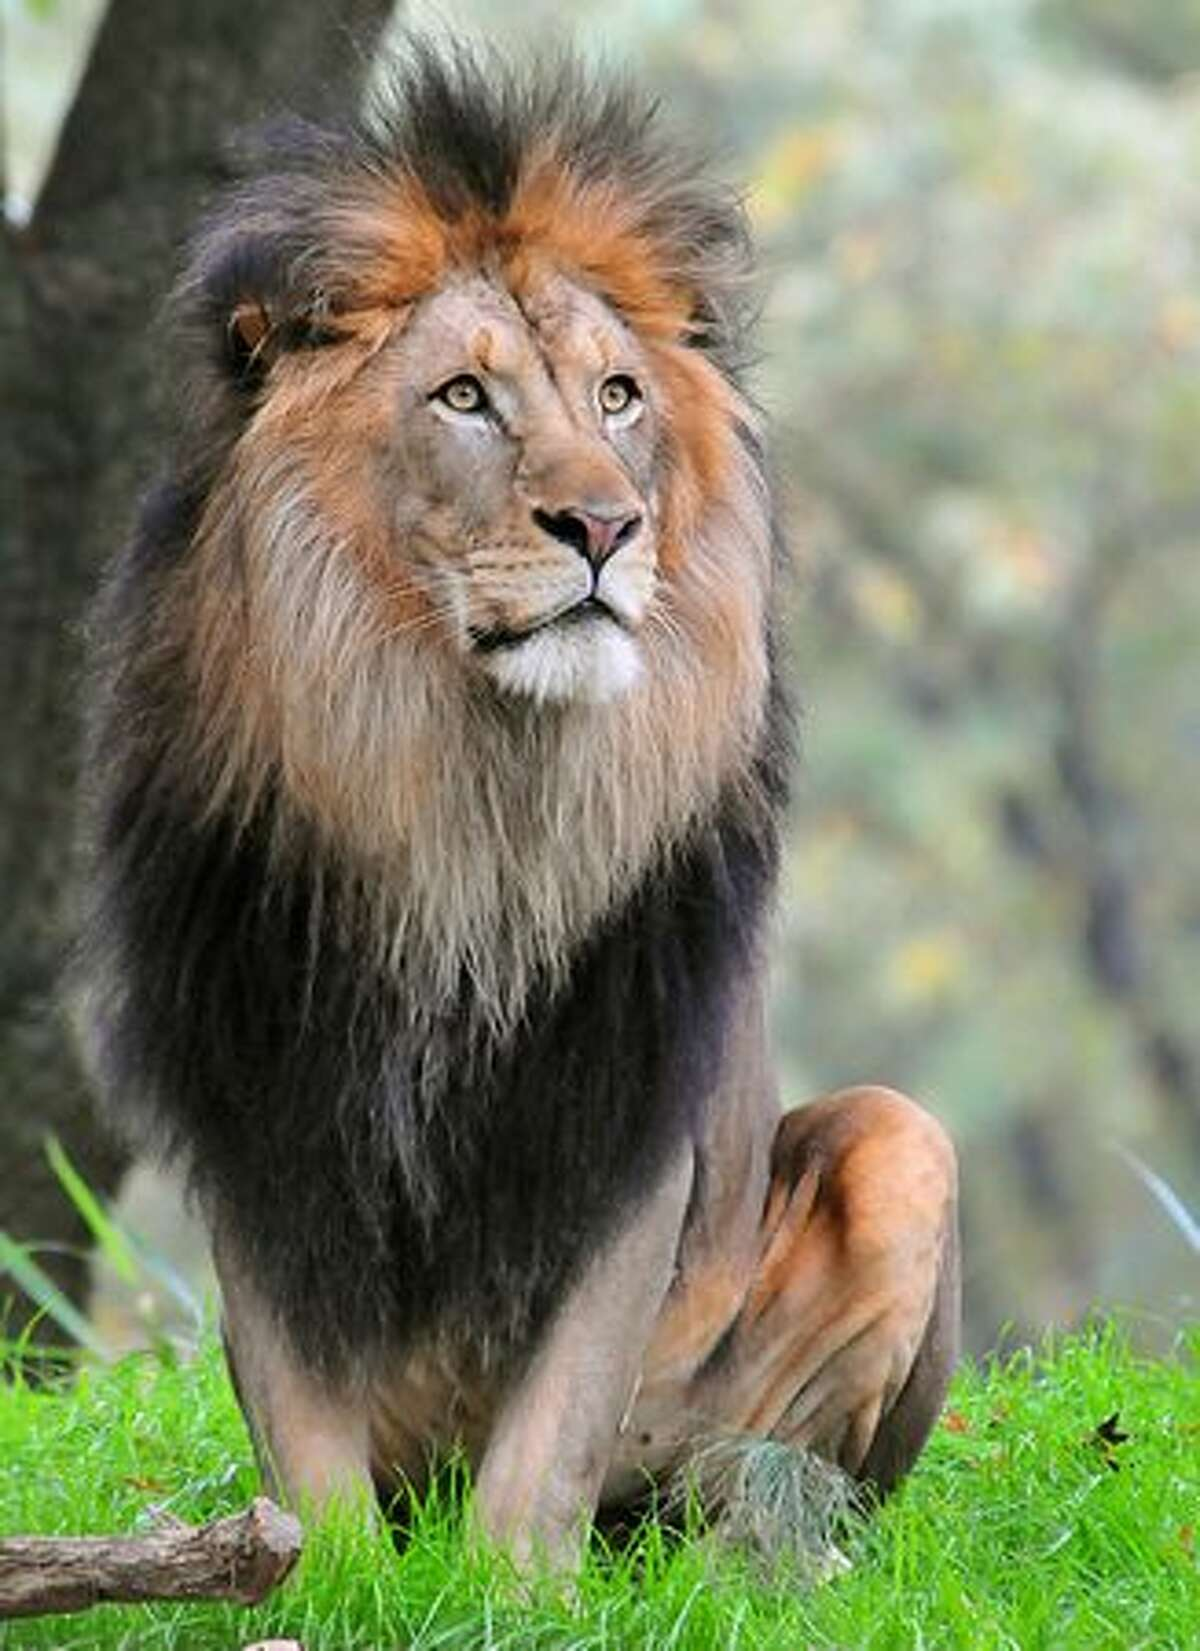 A male lion in its habitat at the Smithsonian Institution's National Zoo in Washington, DC.